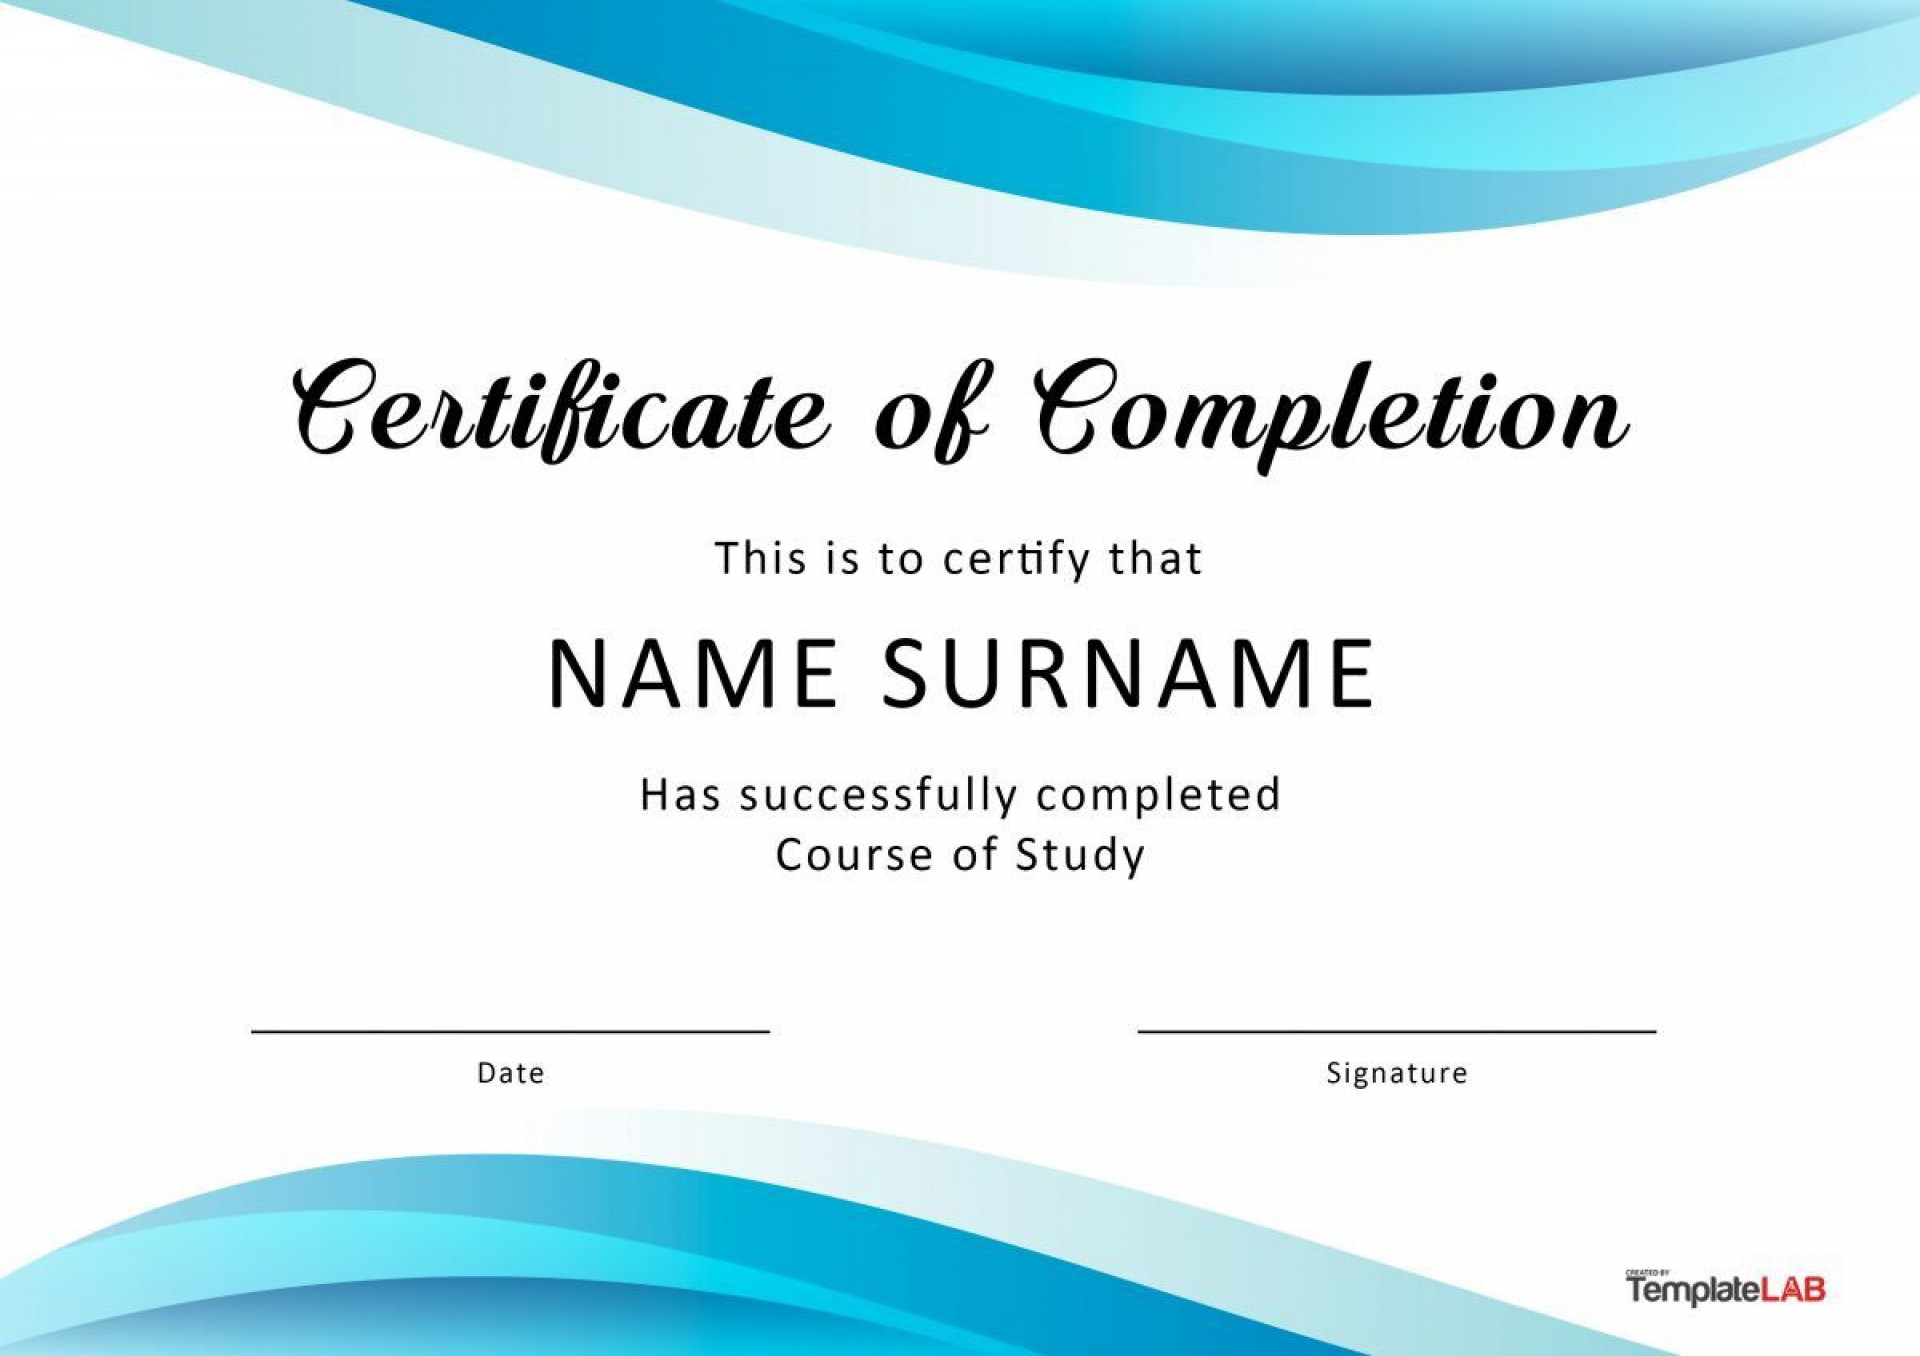 005 Fascinating Free Certificate Of Completion Template High Resolution  Blank Printable Download Word Pdf1920